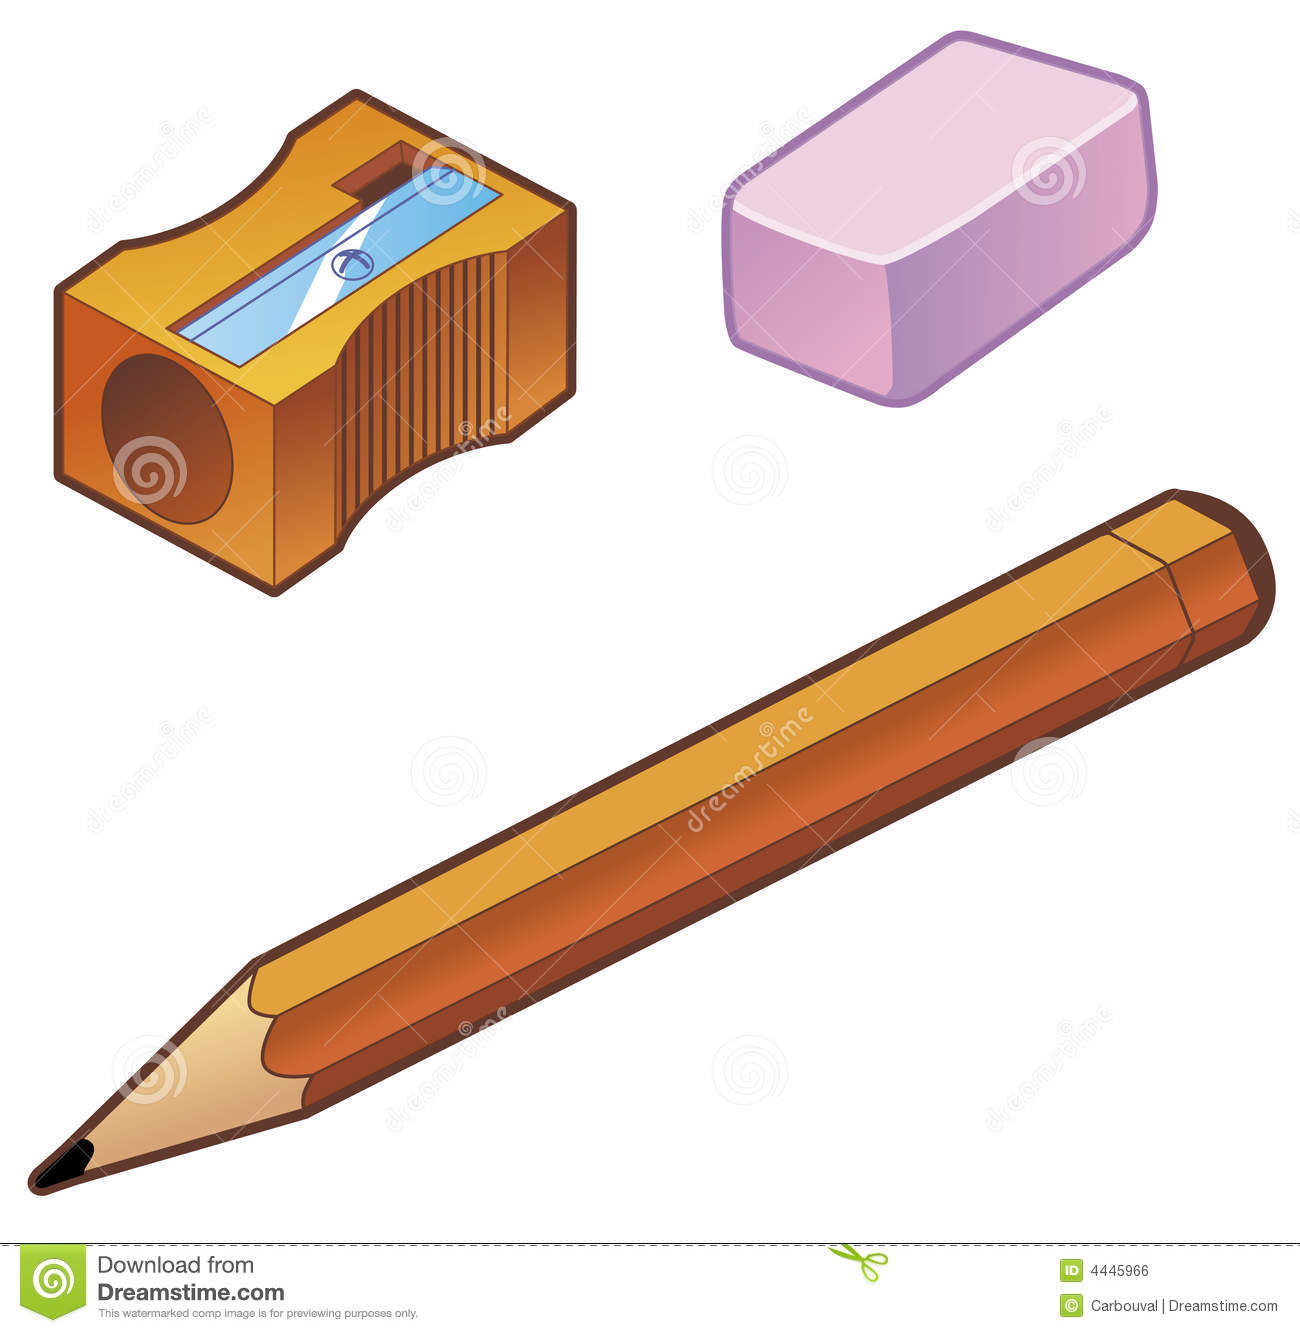 how to draw a sharpener